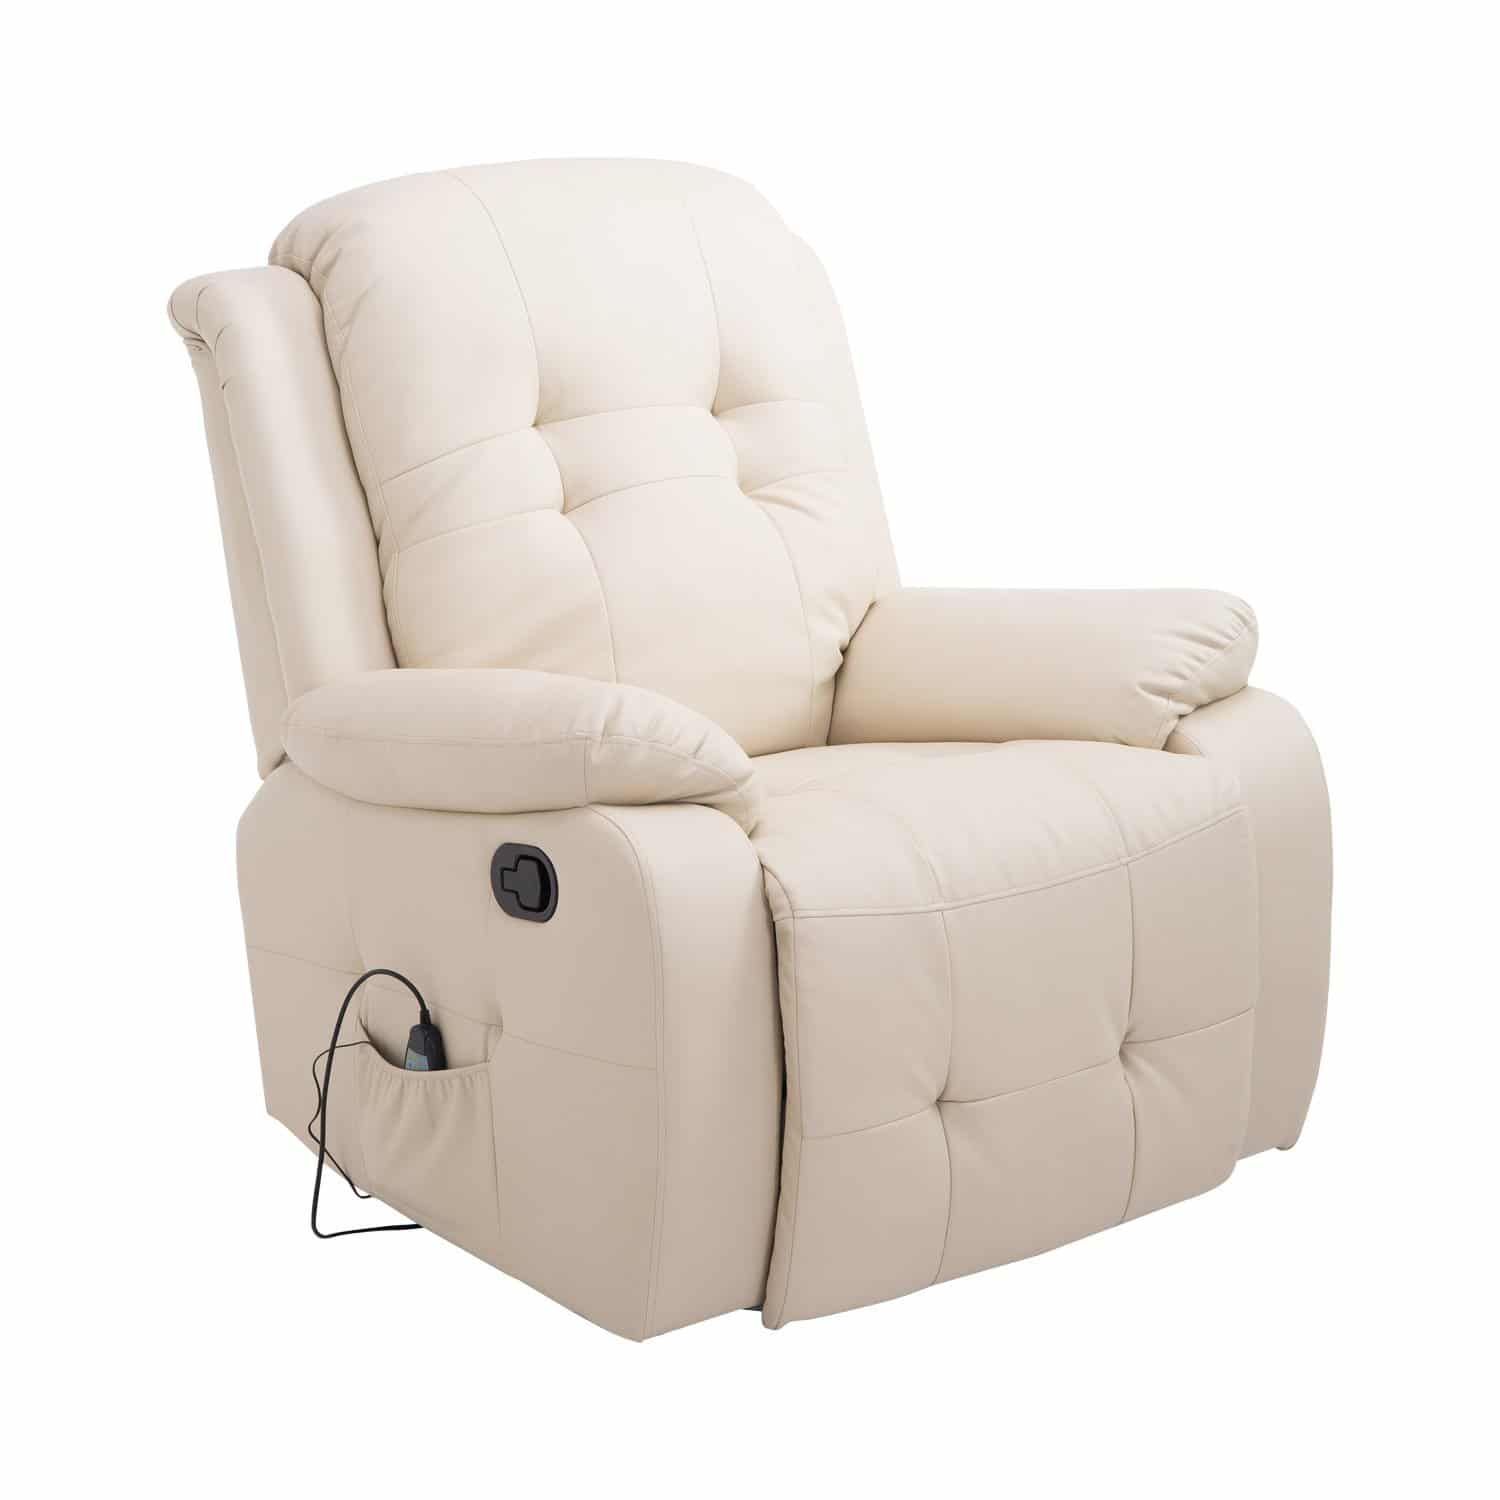 Best Recliner Reviews Top Brands Rating Amp Comparison